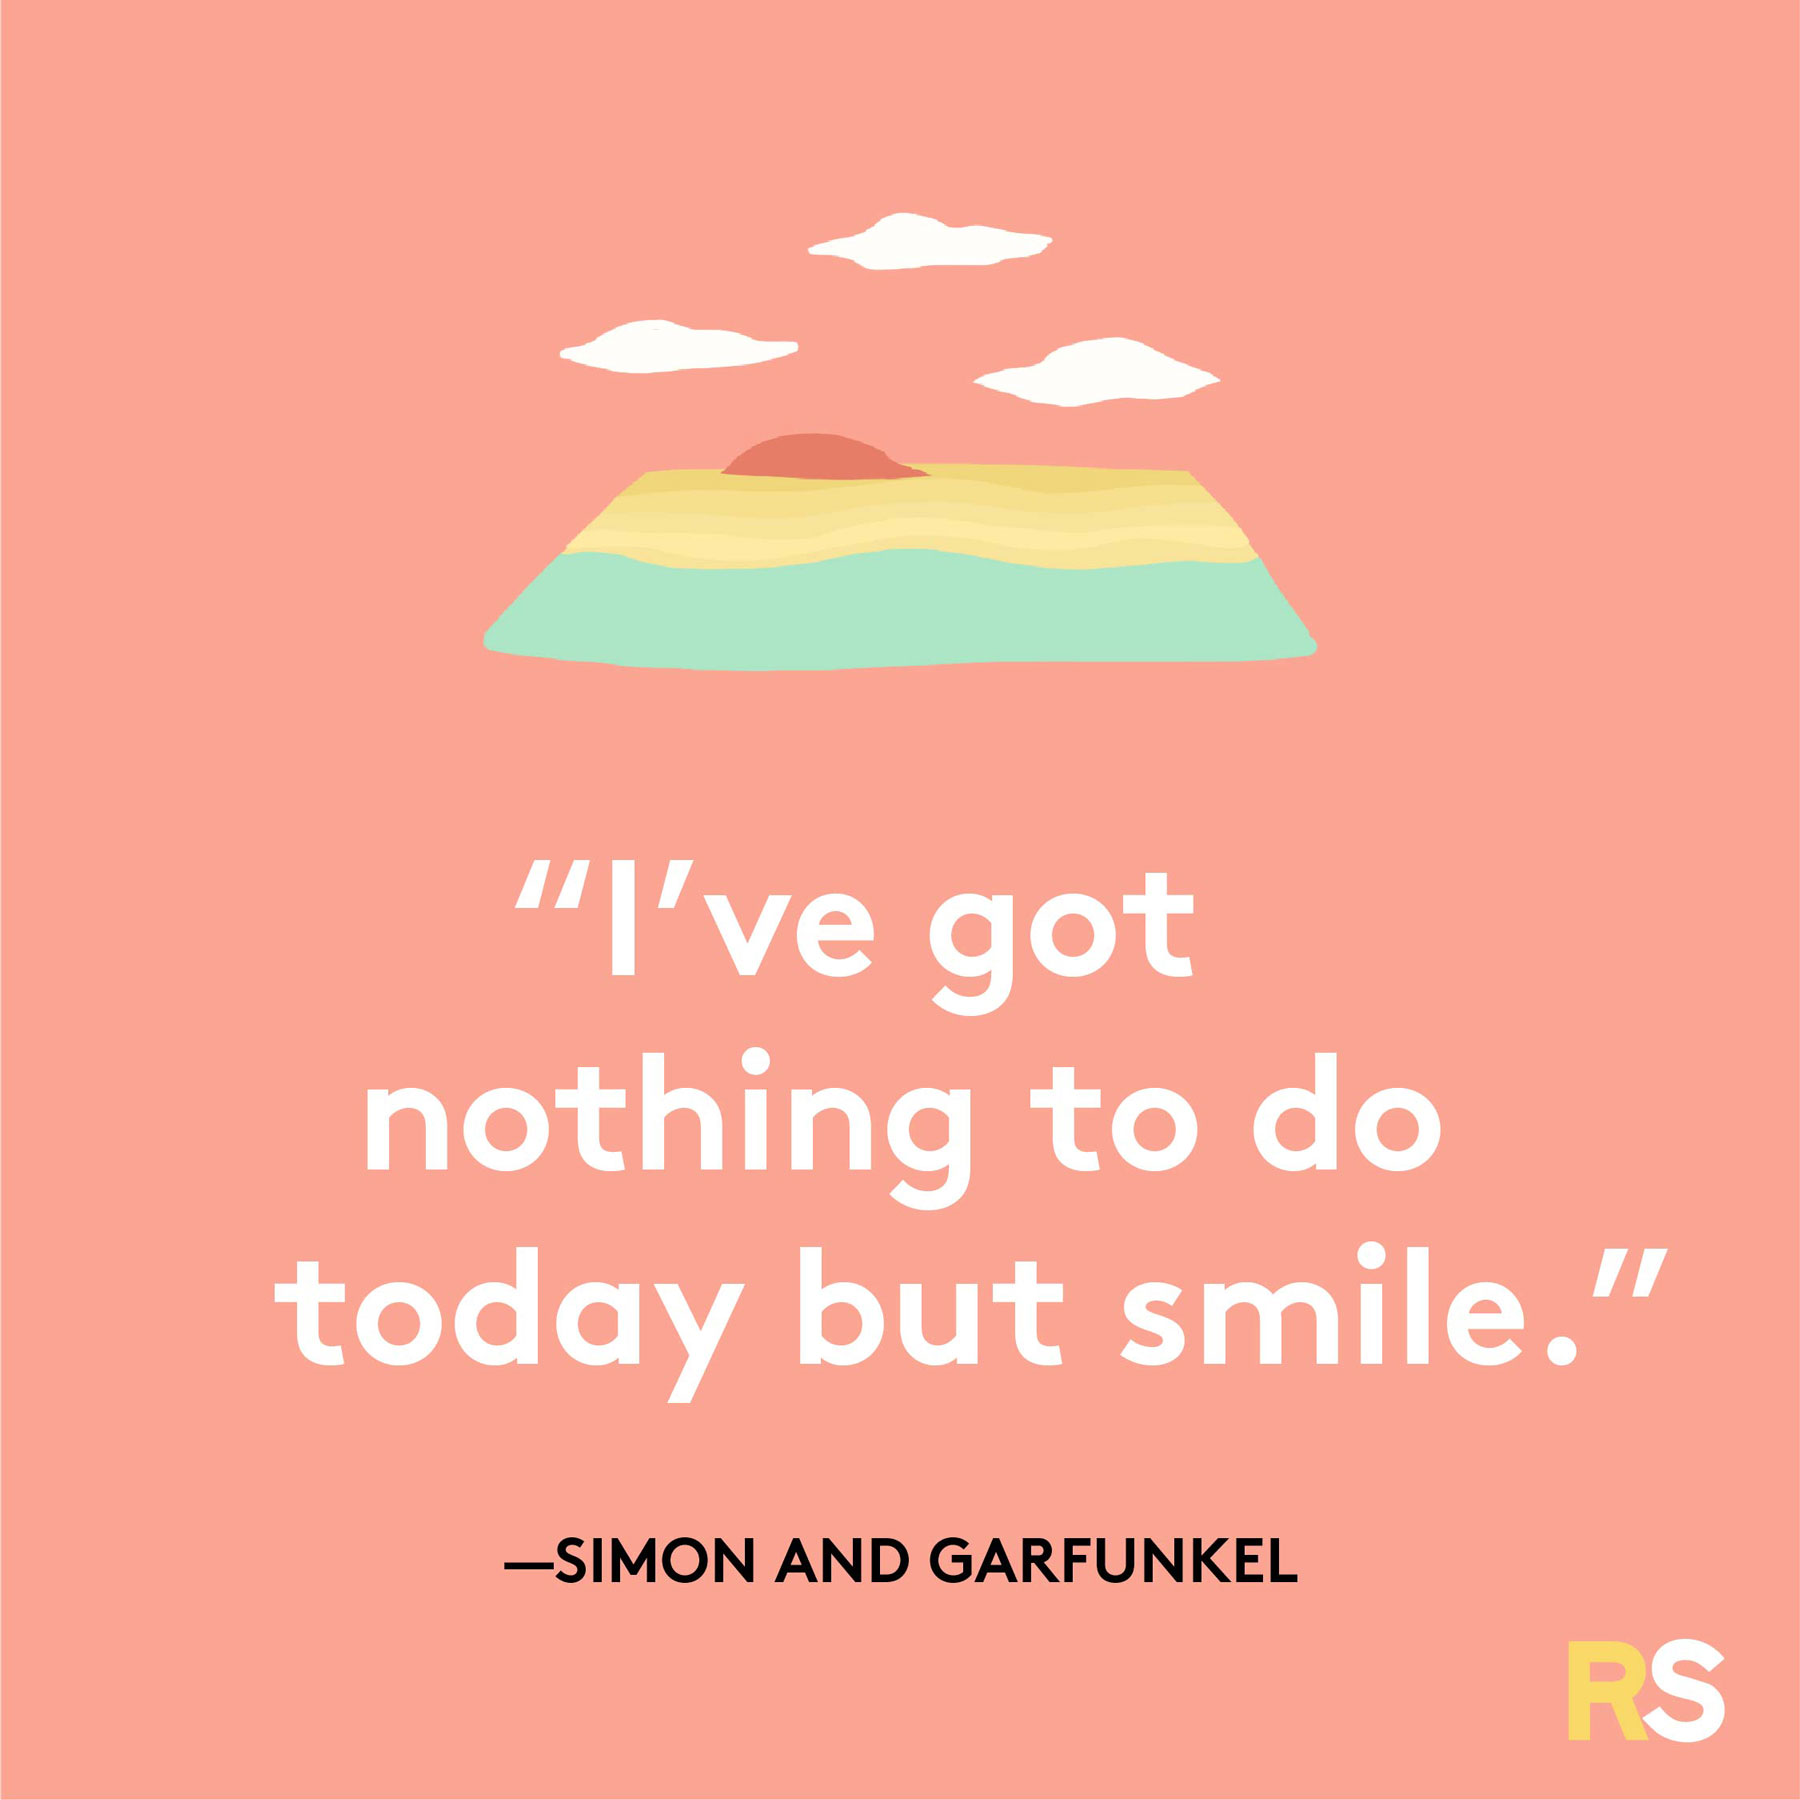 Positive motivating quotes, captions, messages – Simon and Garfunkel quote